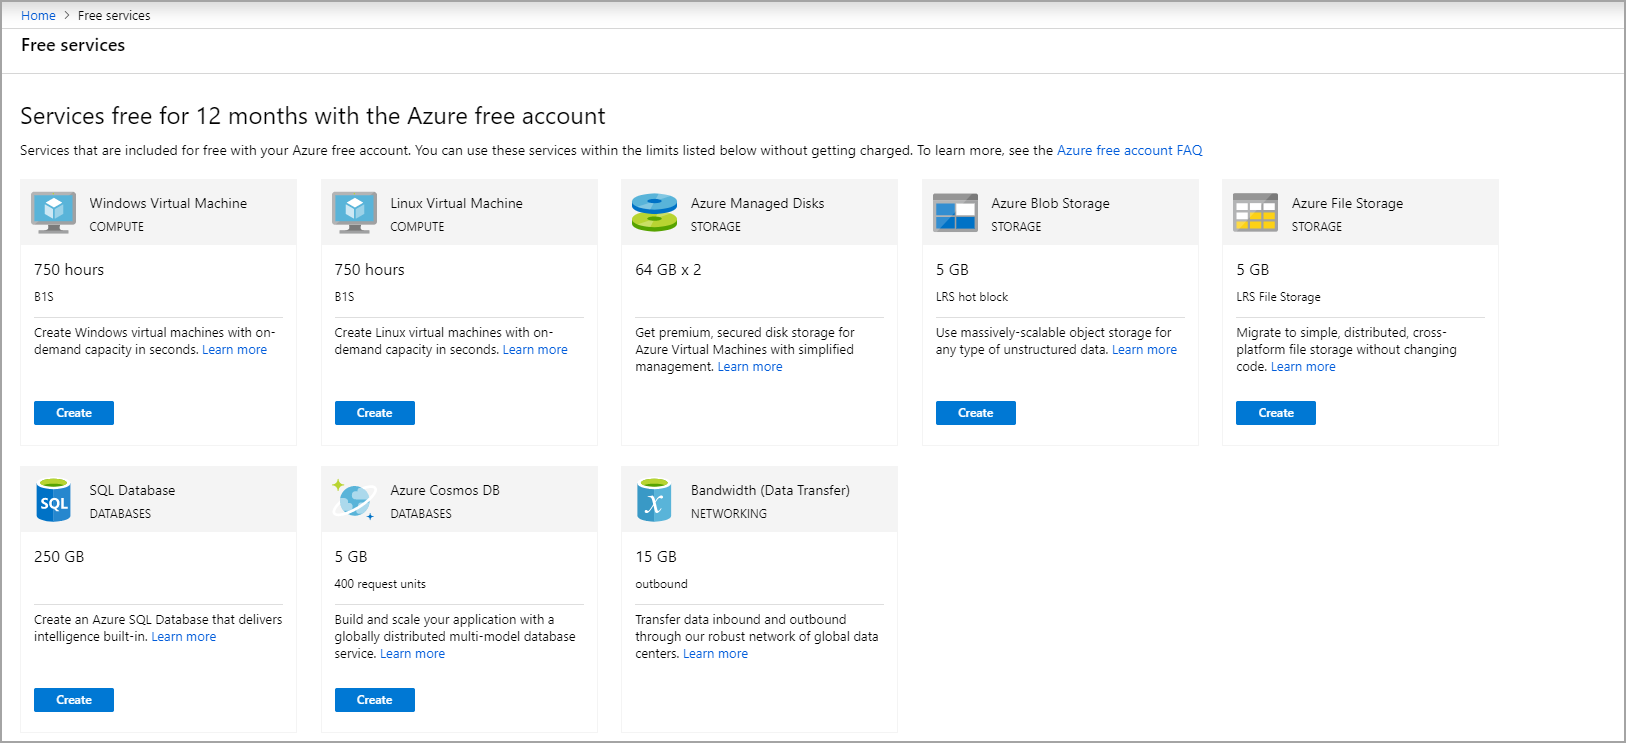 Create Free Services With Azure Free Account Microsoft Docs